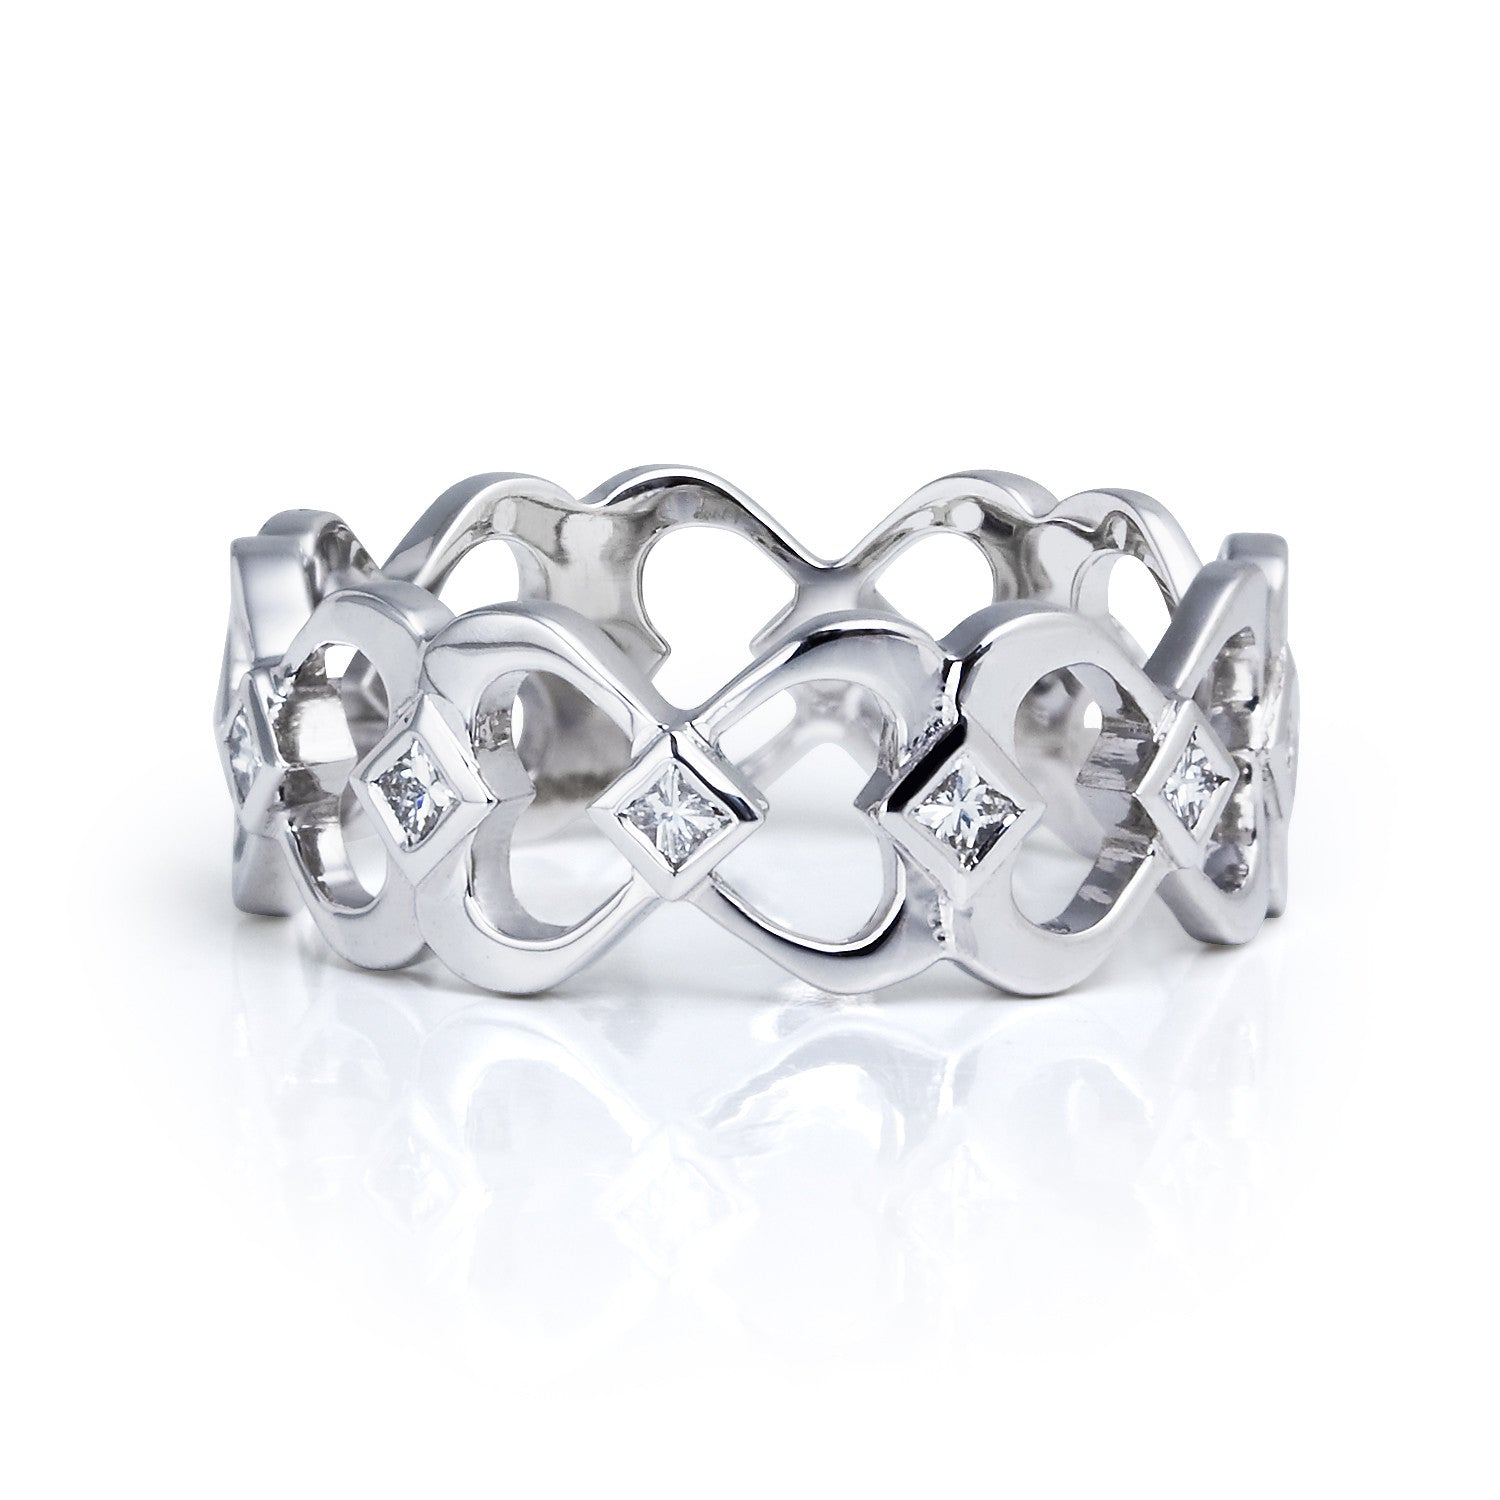 Bespoke princess wedding ring - 18ct recycled white gold, heart motifs and conflict-free princess-cut diamonds